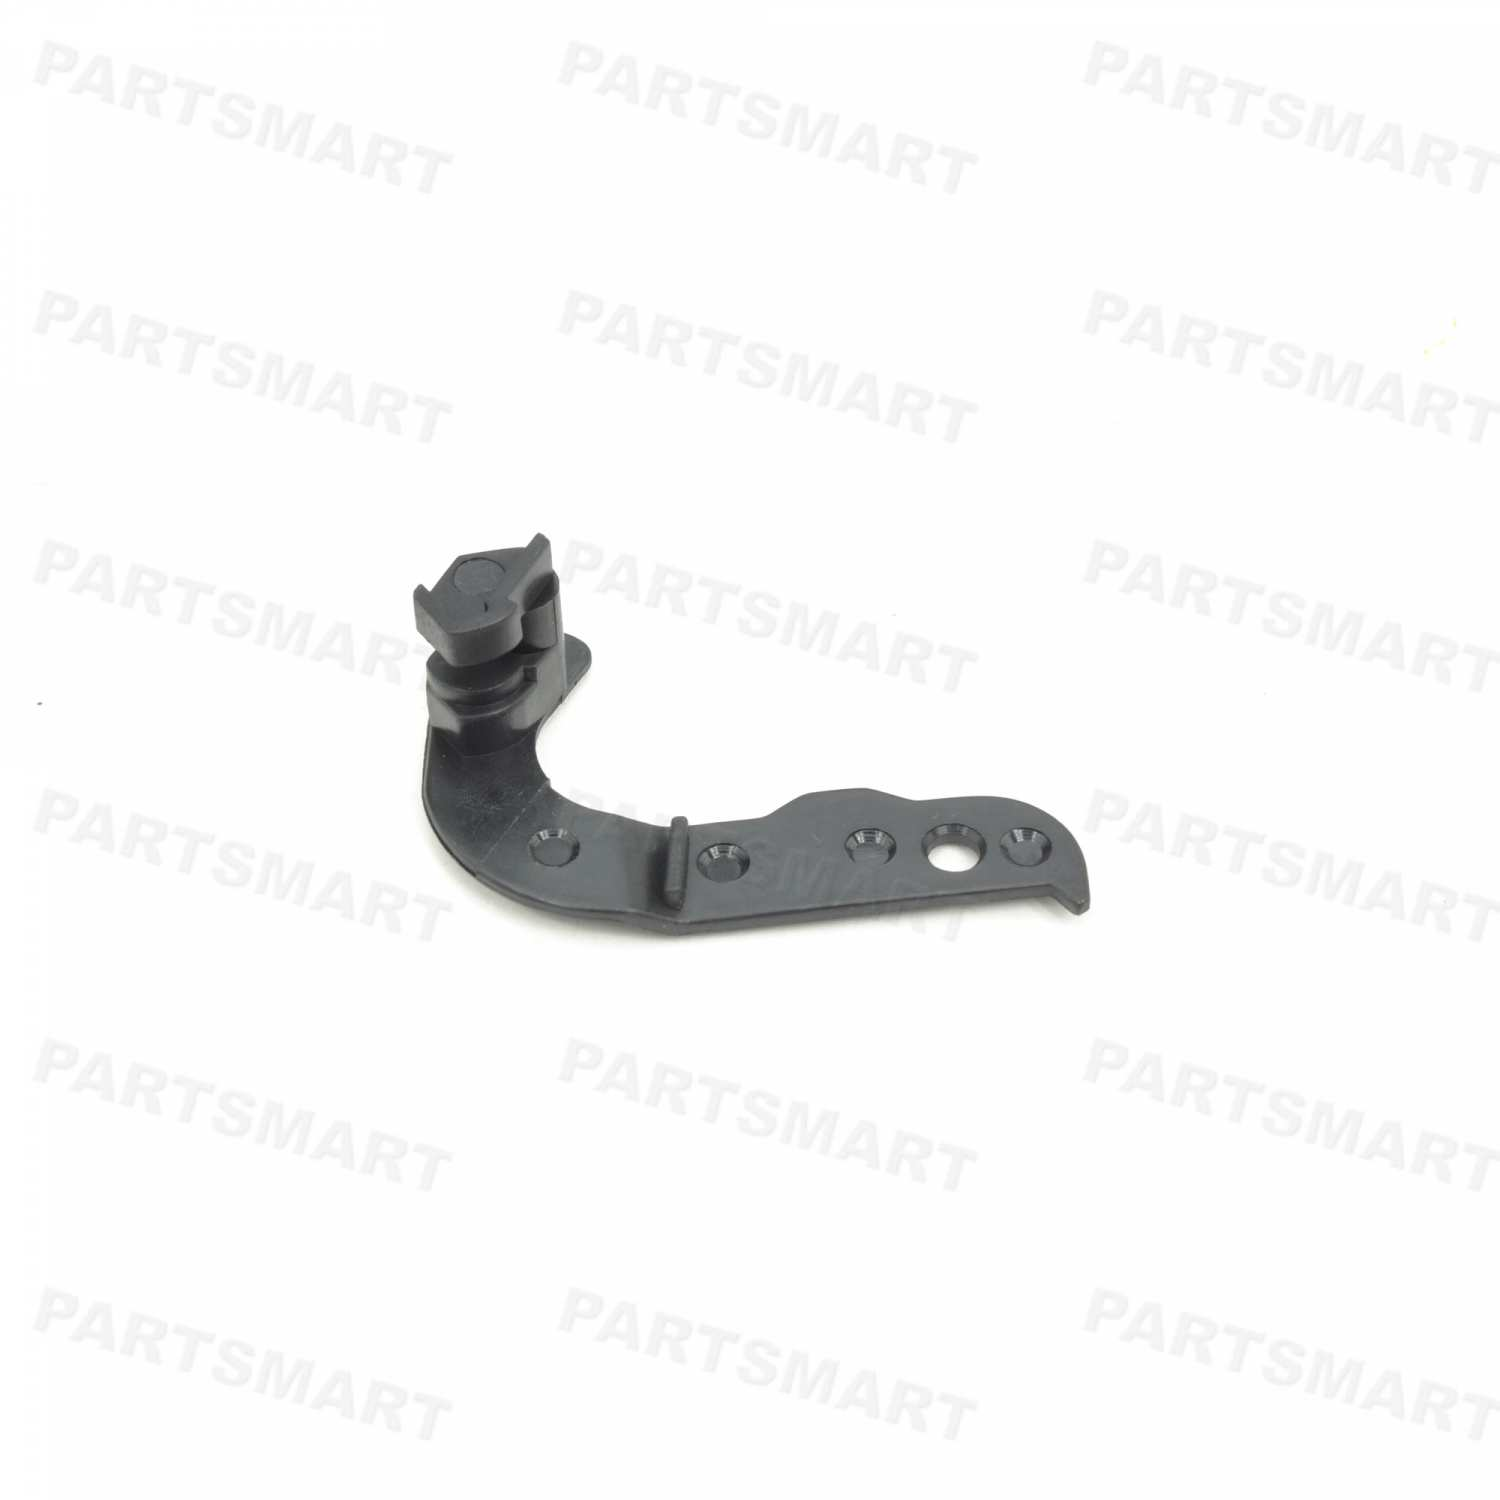 RC2-1412-000 Lever, Left Tension -HPP1505 for HP LaserJet P1505